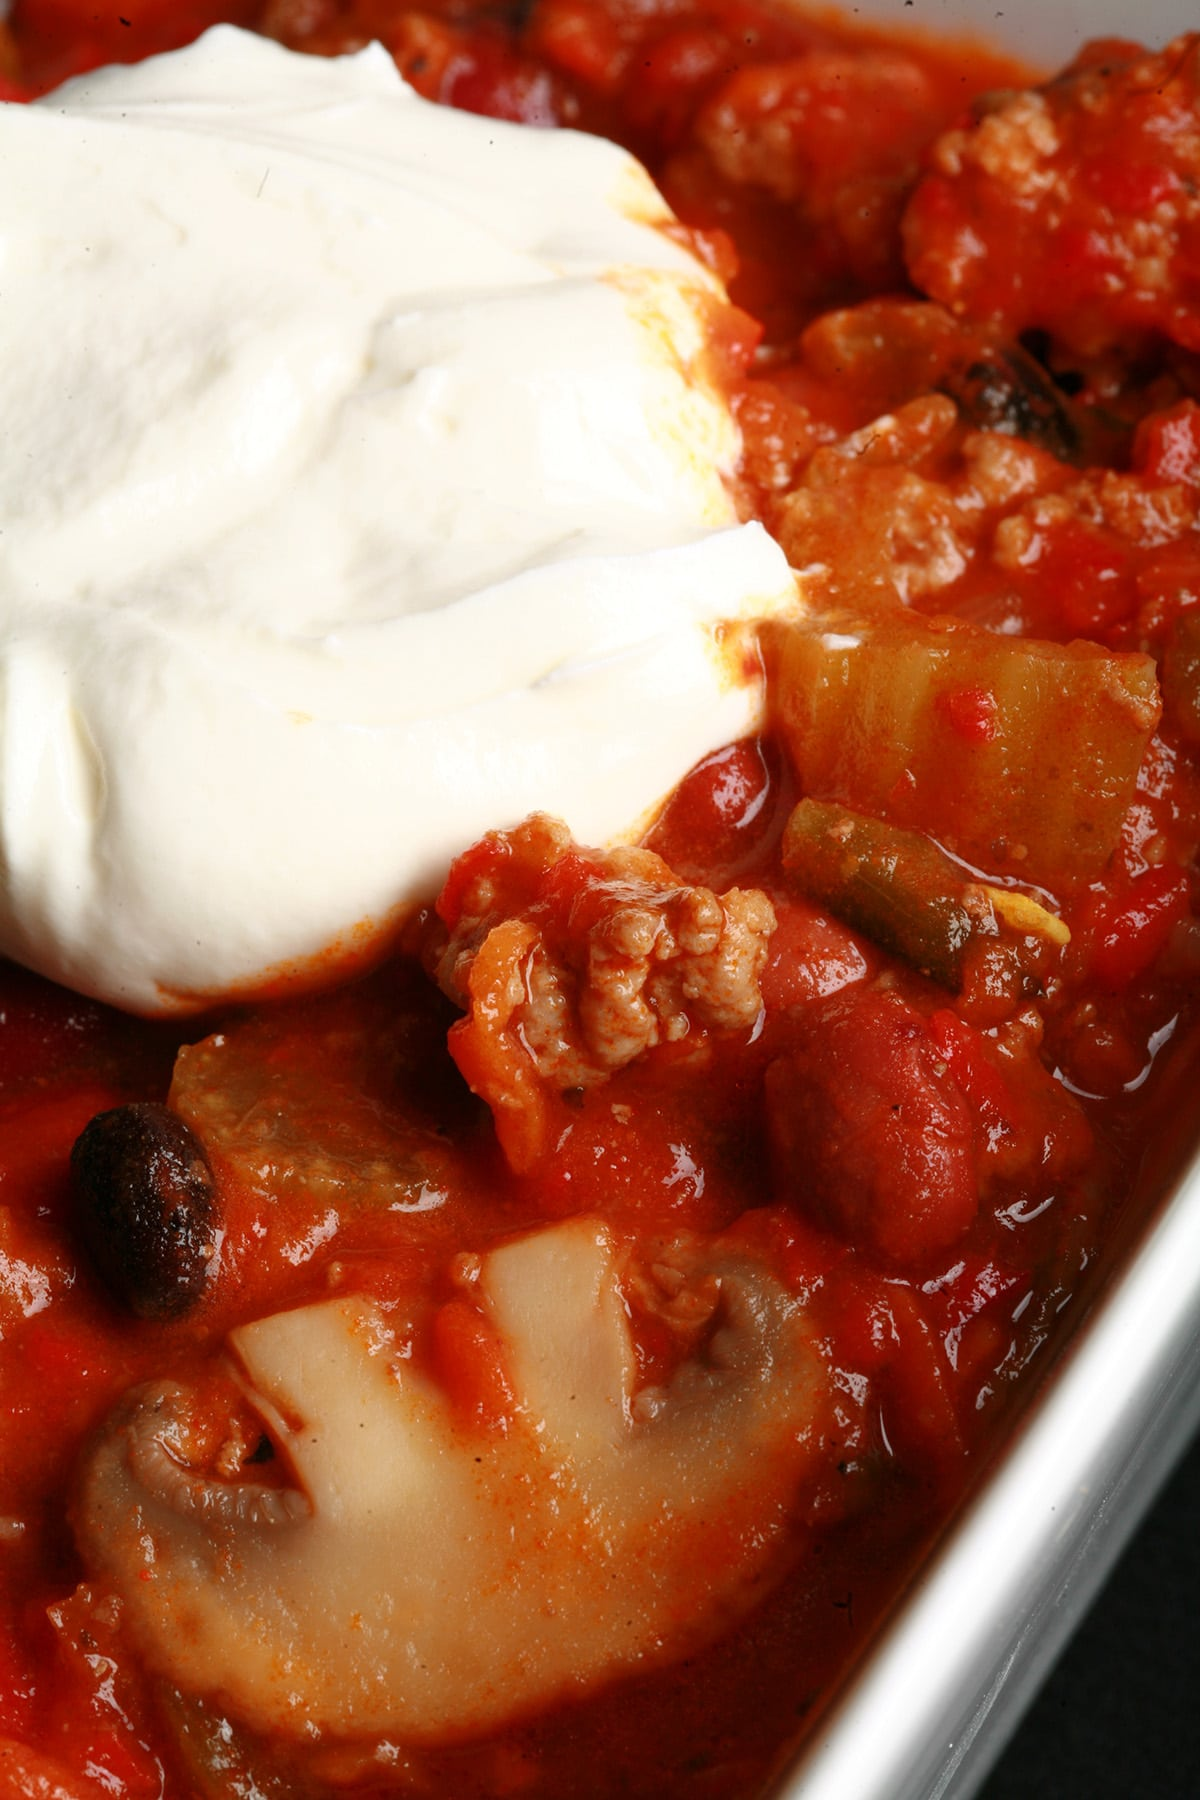 Close up photo of a bowl of roasted convention chili. Kidney beans, ground beef, mushrooms, celery, and red peppers are visible, and there is a dollop of sour cream on top.